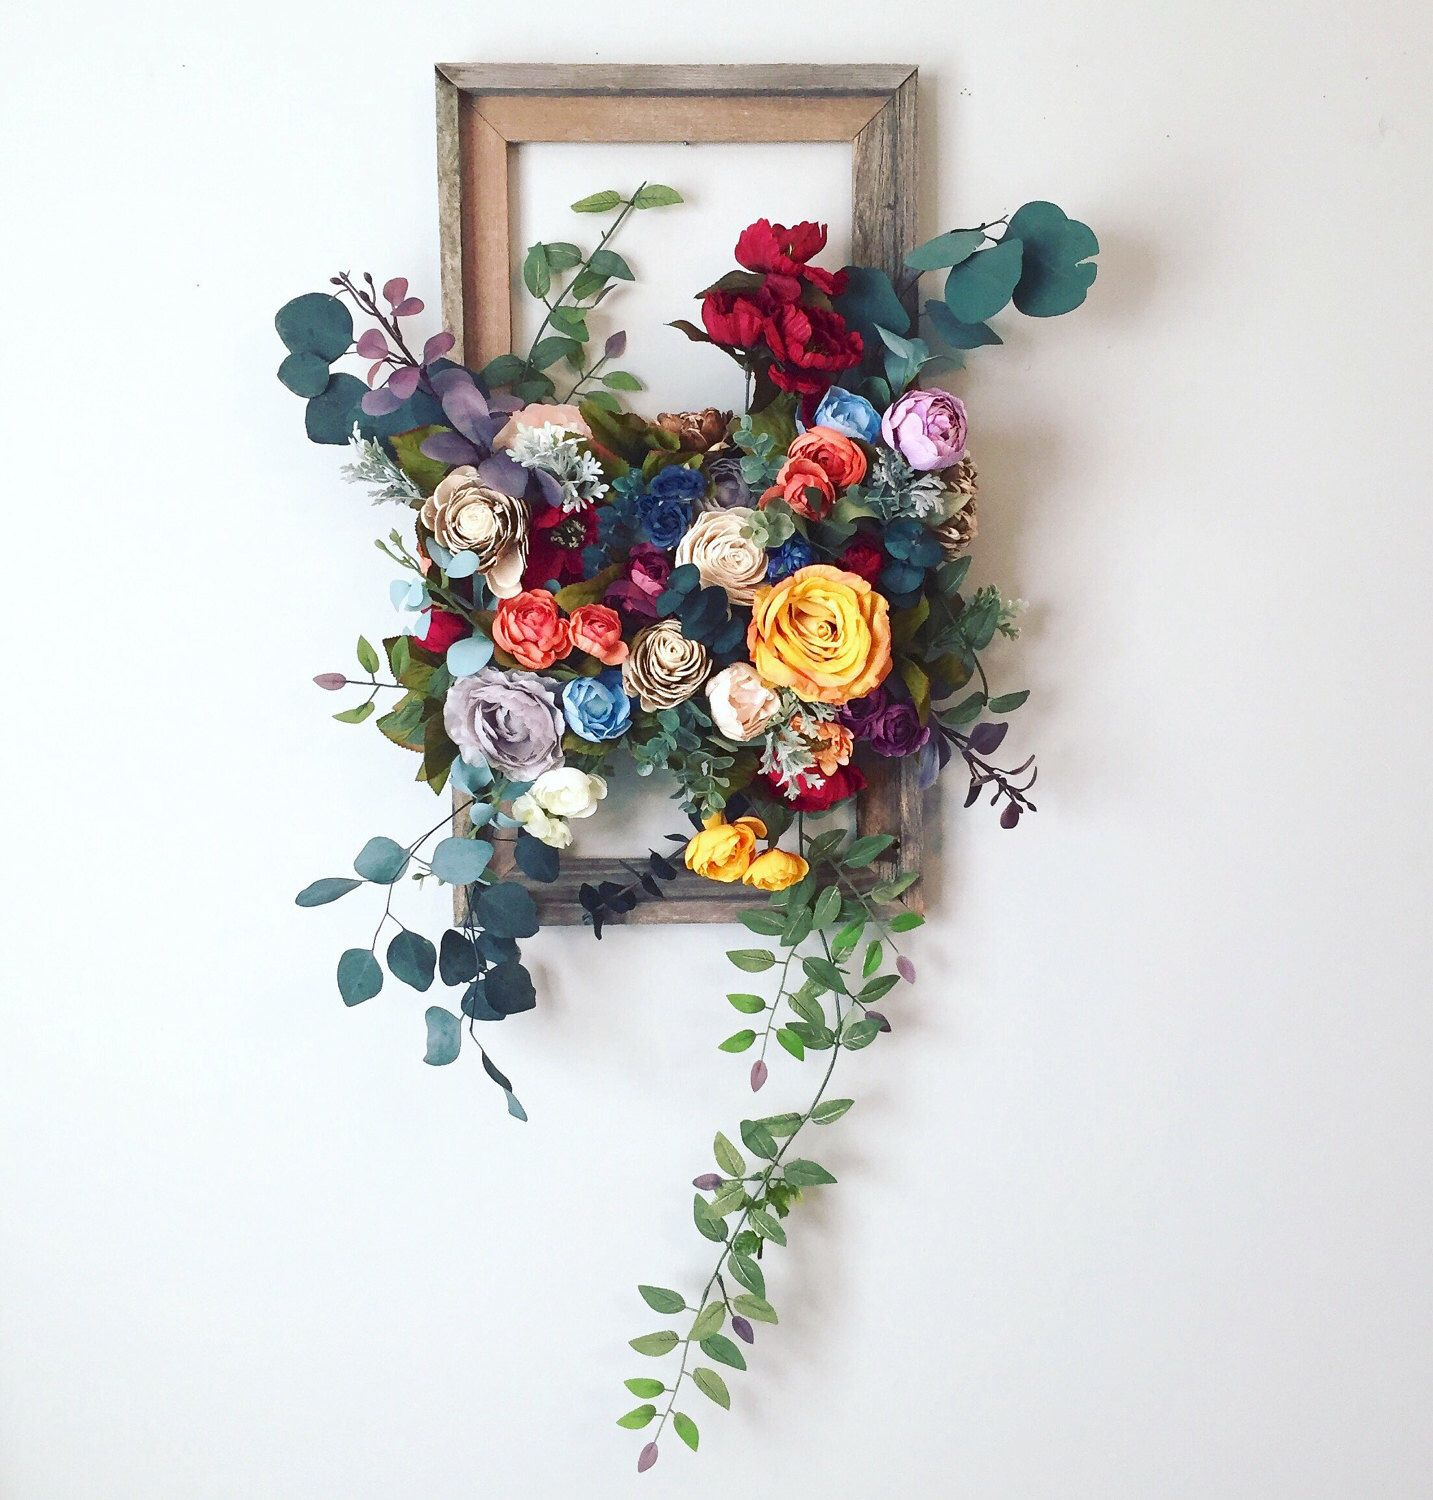 Foam Covered In Flowers In Open Frame Wall Hanging Floral Wall